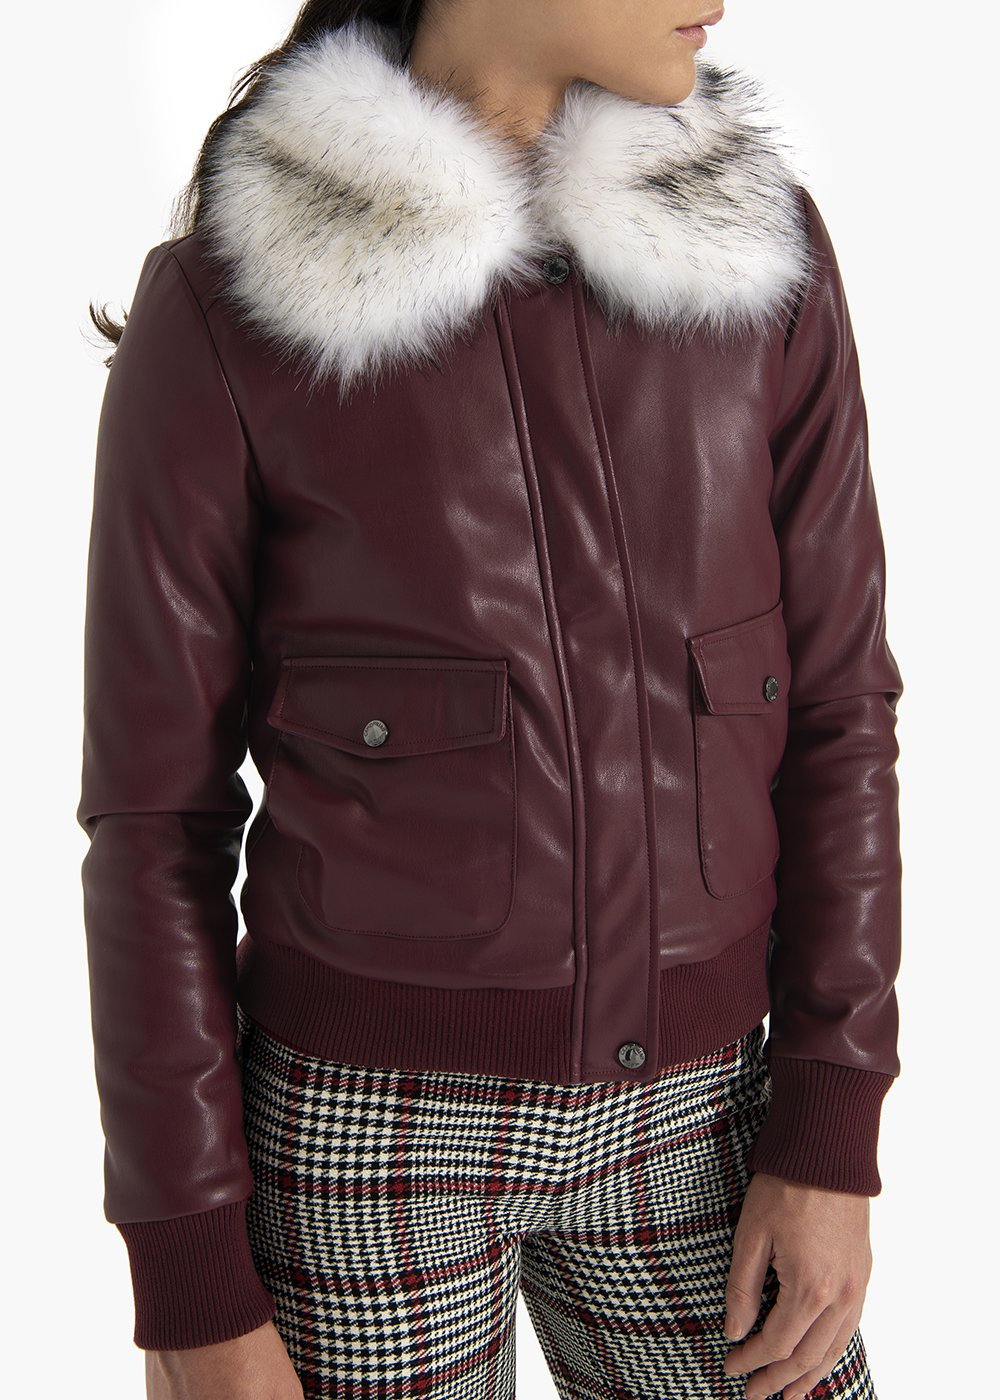 Bomber Jacket Gipsy in faux leather  with eco-fur collar - Black cherry - Woman